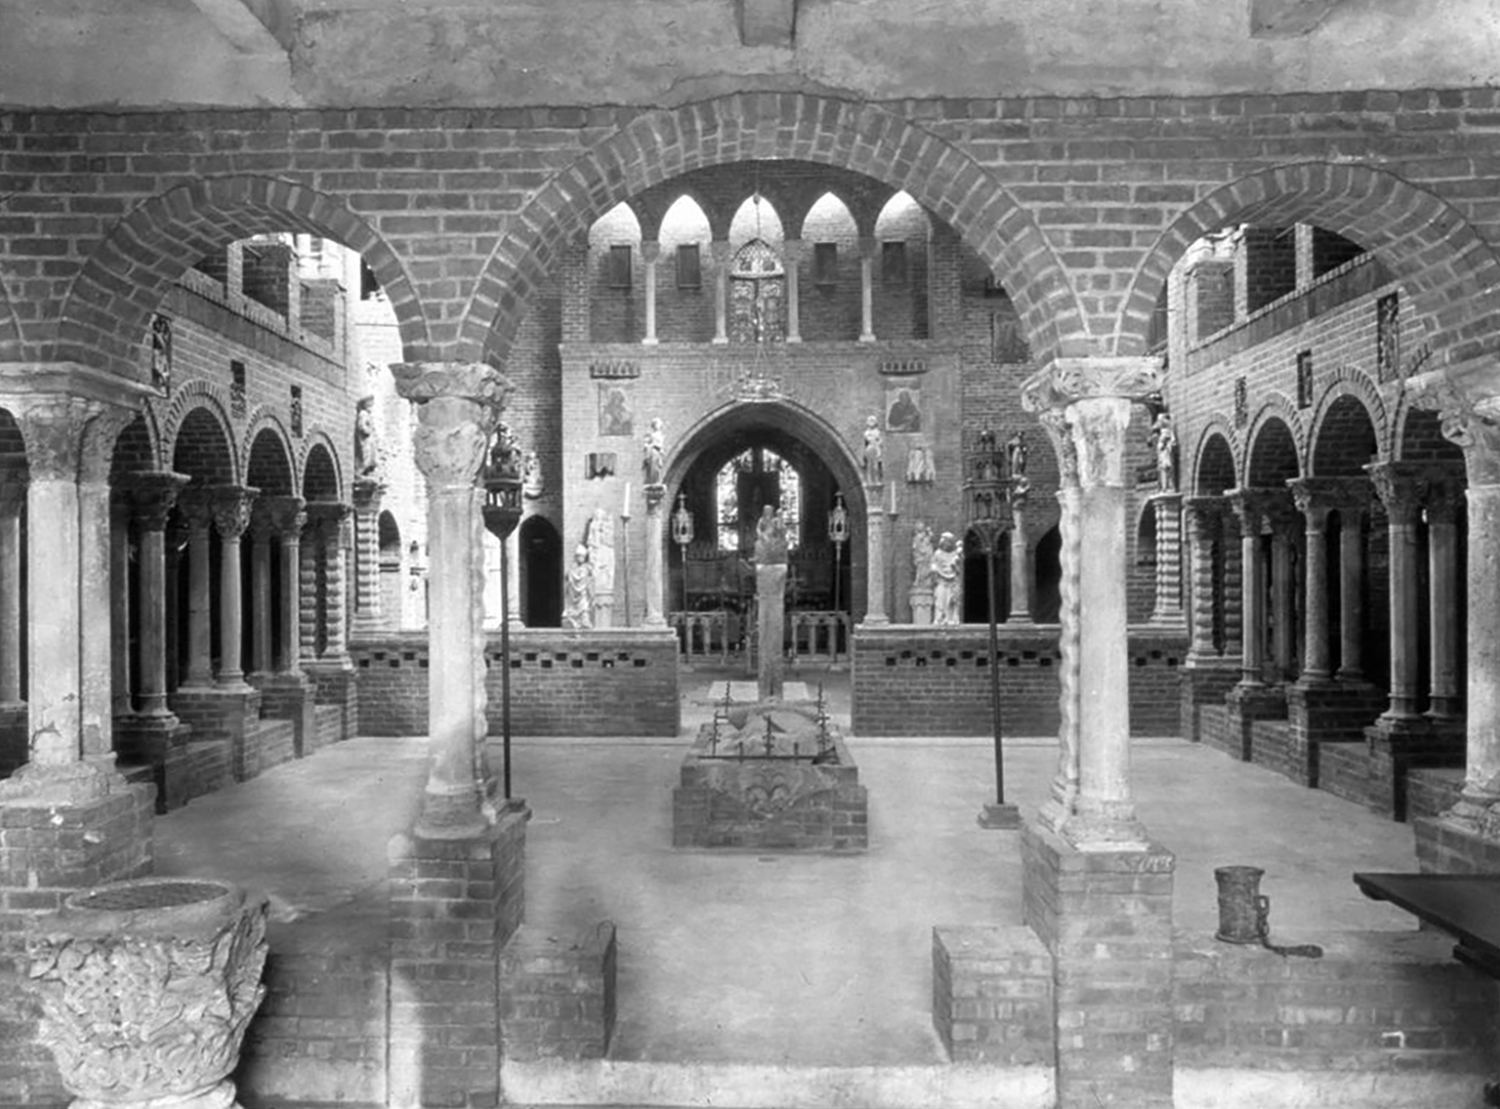 Figure 4: View of George Grey Barnard's Cloisters, New York, c. 1925, The Metropolitan Museum of Art (Image © The Metropolitan Museum of Art).